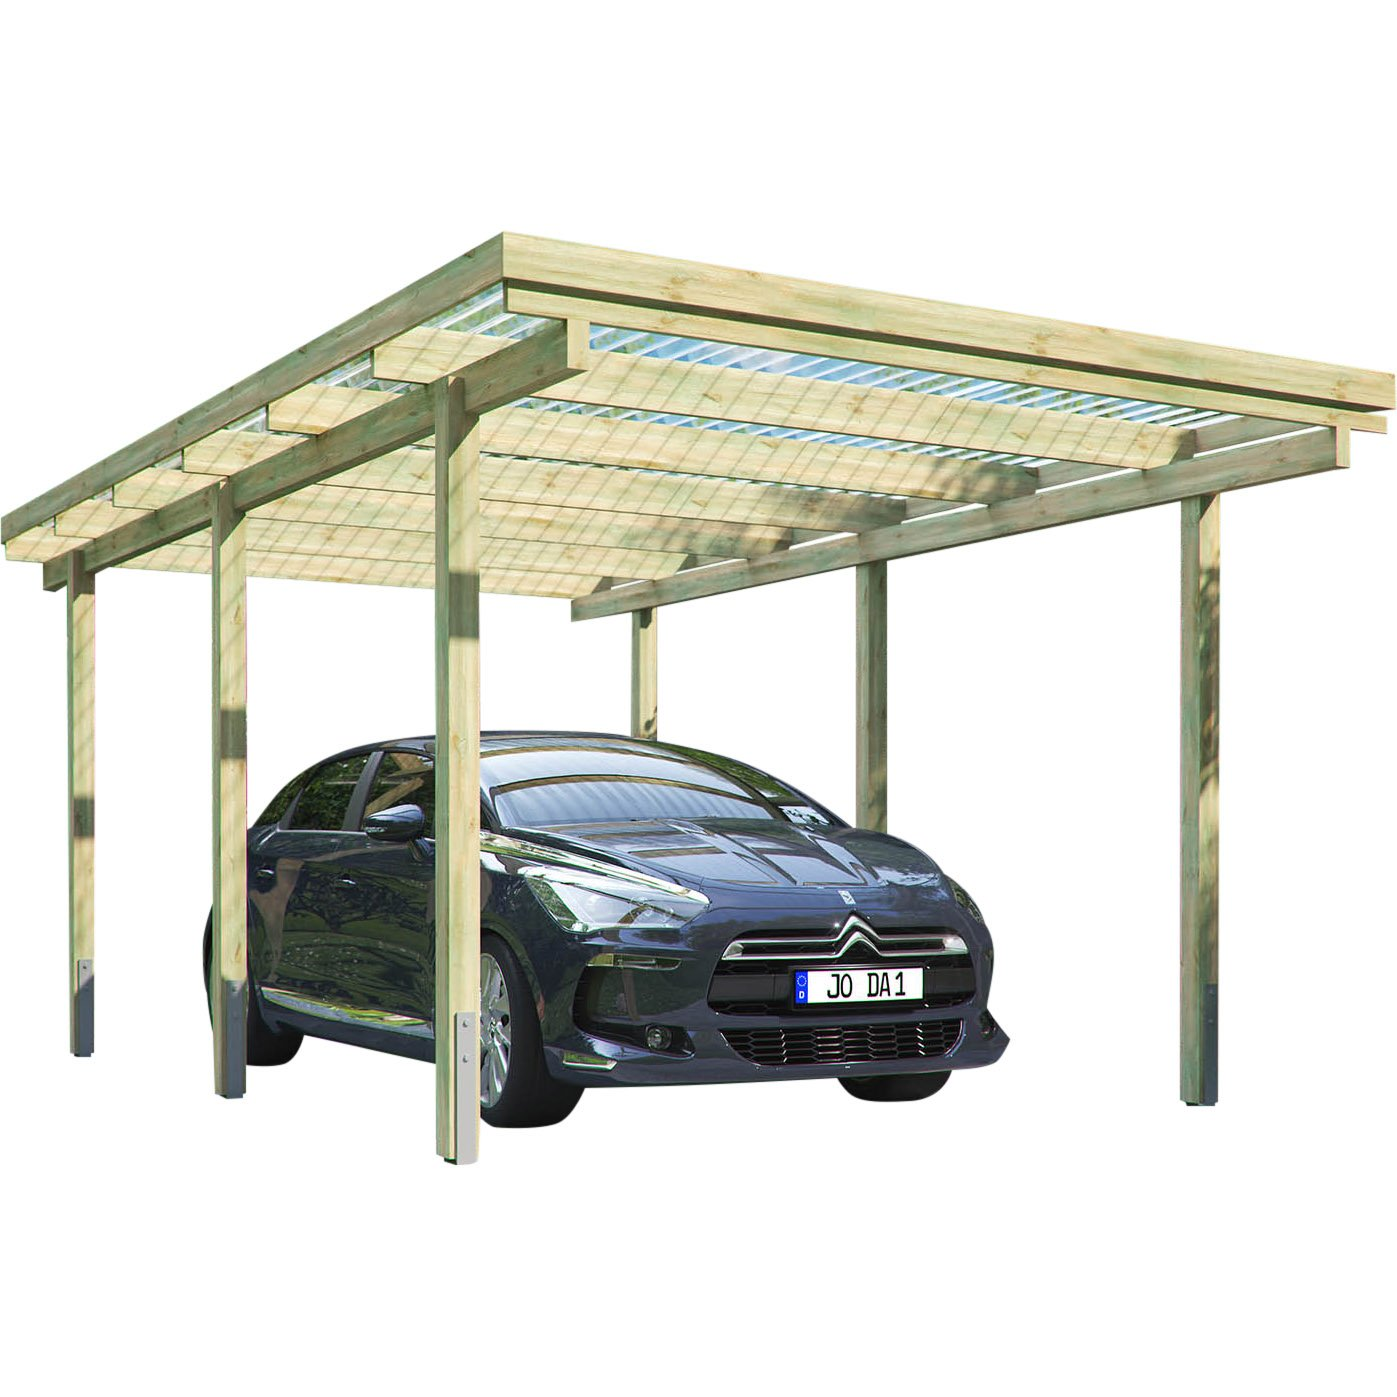 Carport Elbe X M Flachdach Garage Unterstand Holz Amazonde Garten With Car  Port